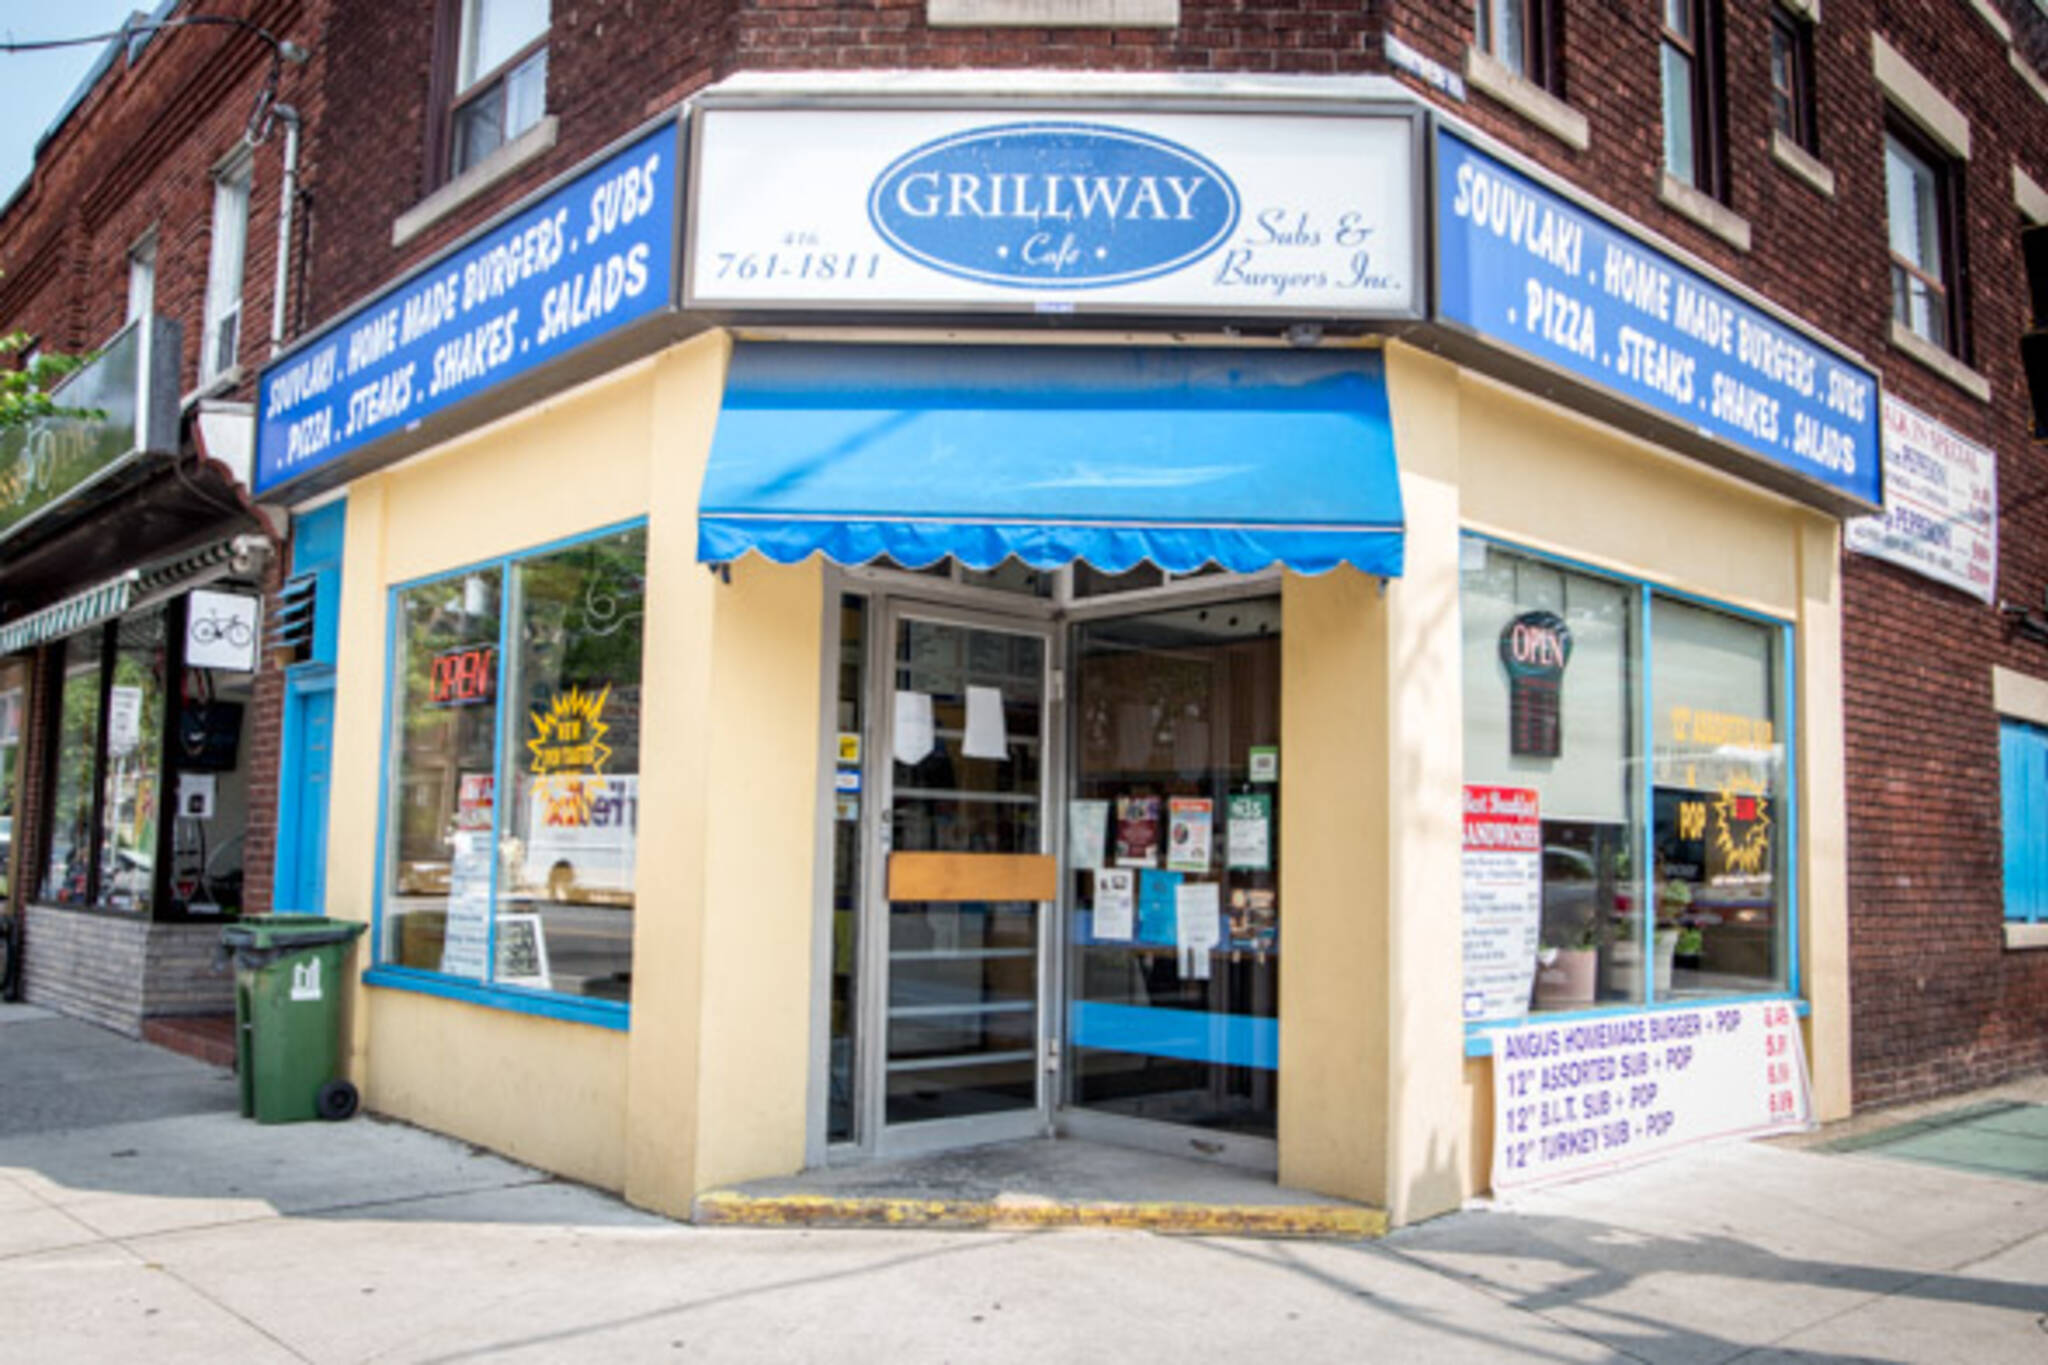 Grillway Cafe Toronto